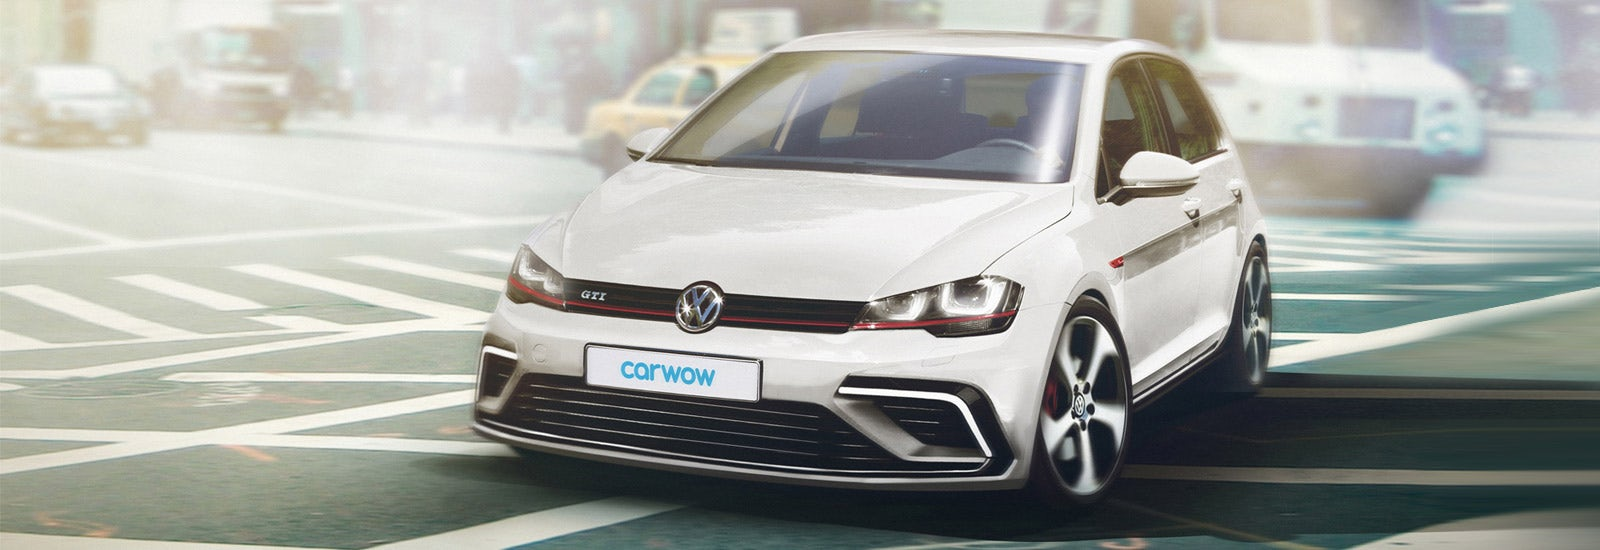 2019 Vw Golf Mk8 Price Specs Release Date Carwow